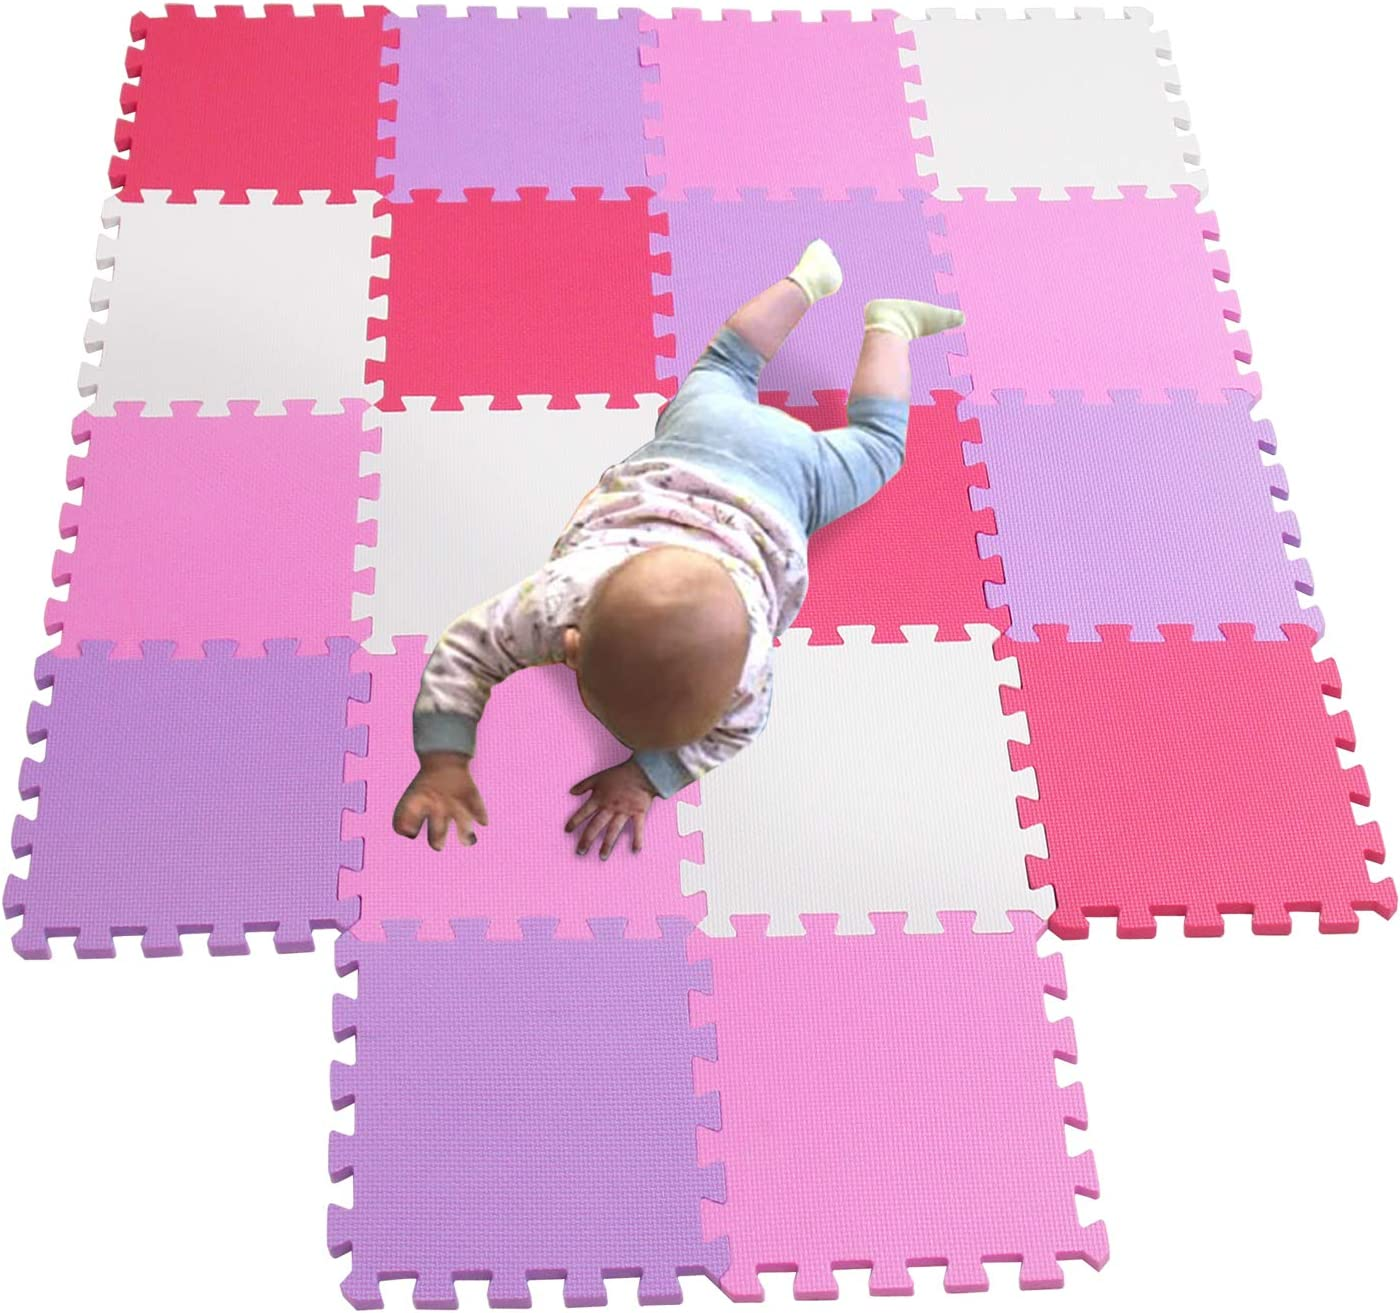 MQIAOHAM Baby Play mats Soft Puzzles jigsaws overseas Shape Puzzle for ev Free shipping on posting reviews